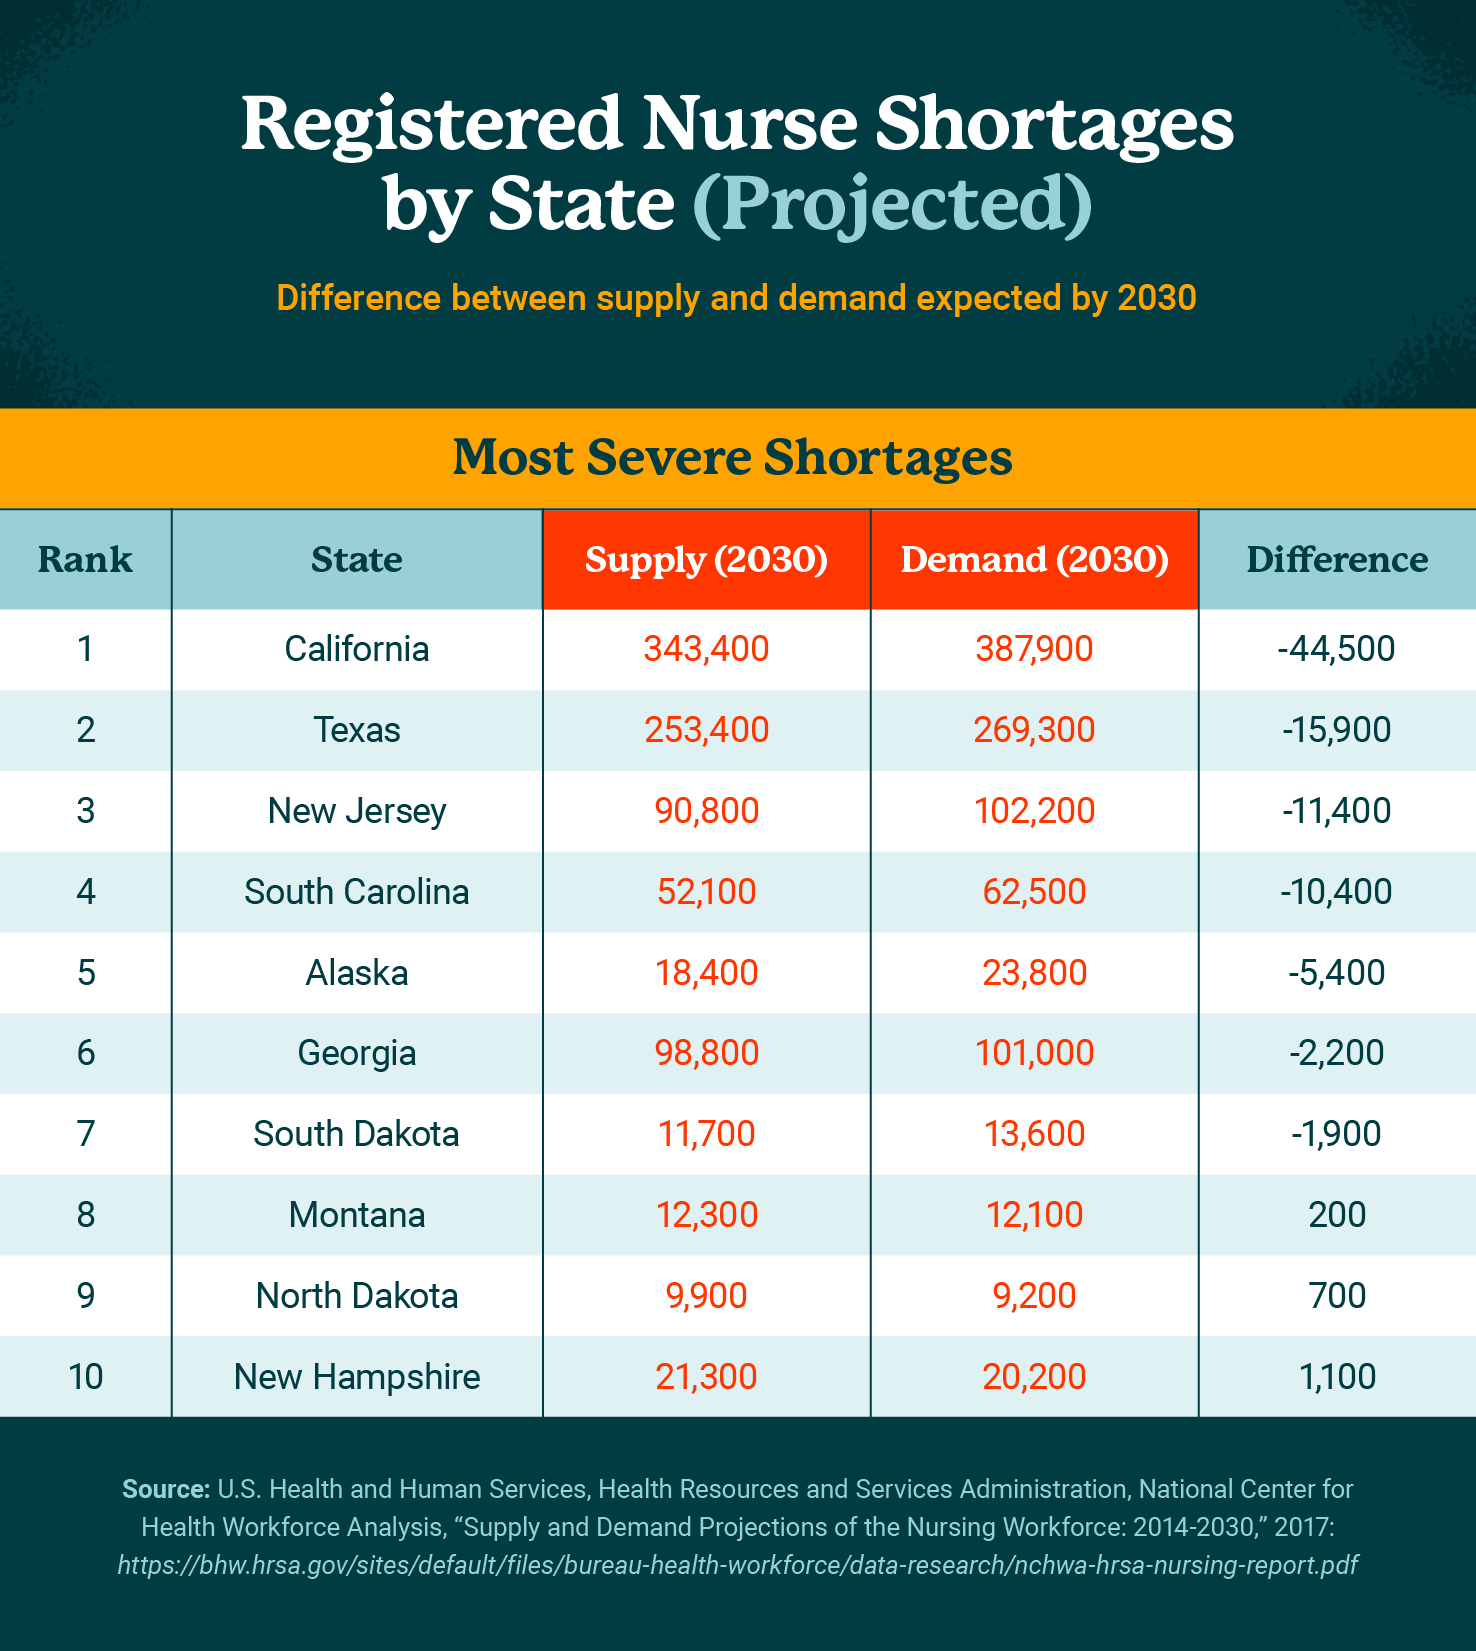 Registered Nurses Shortages by State graphic